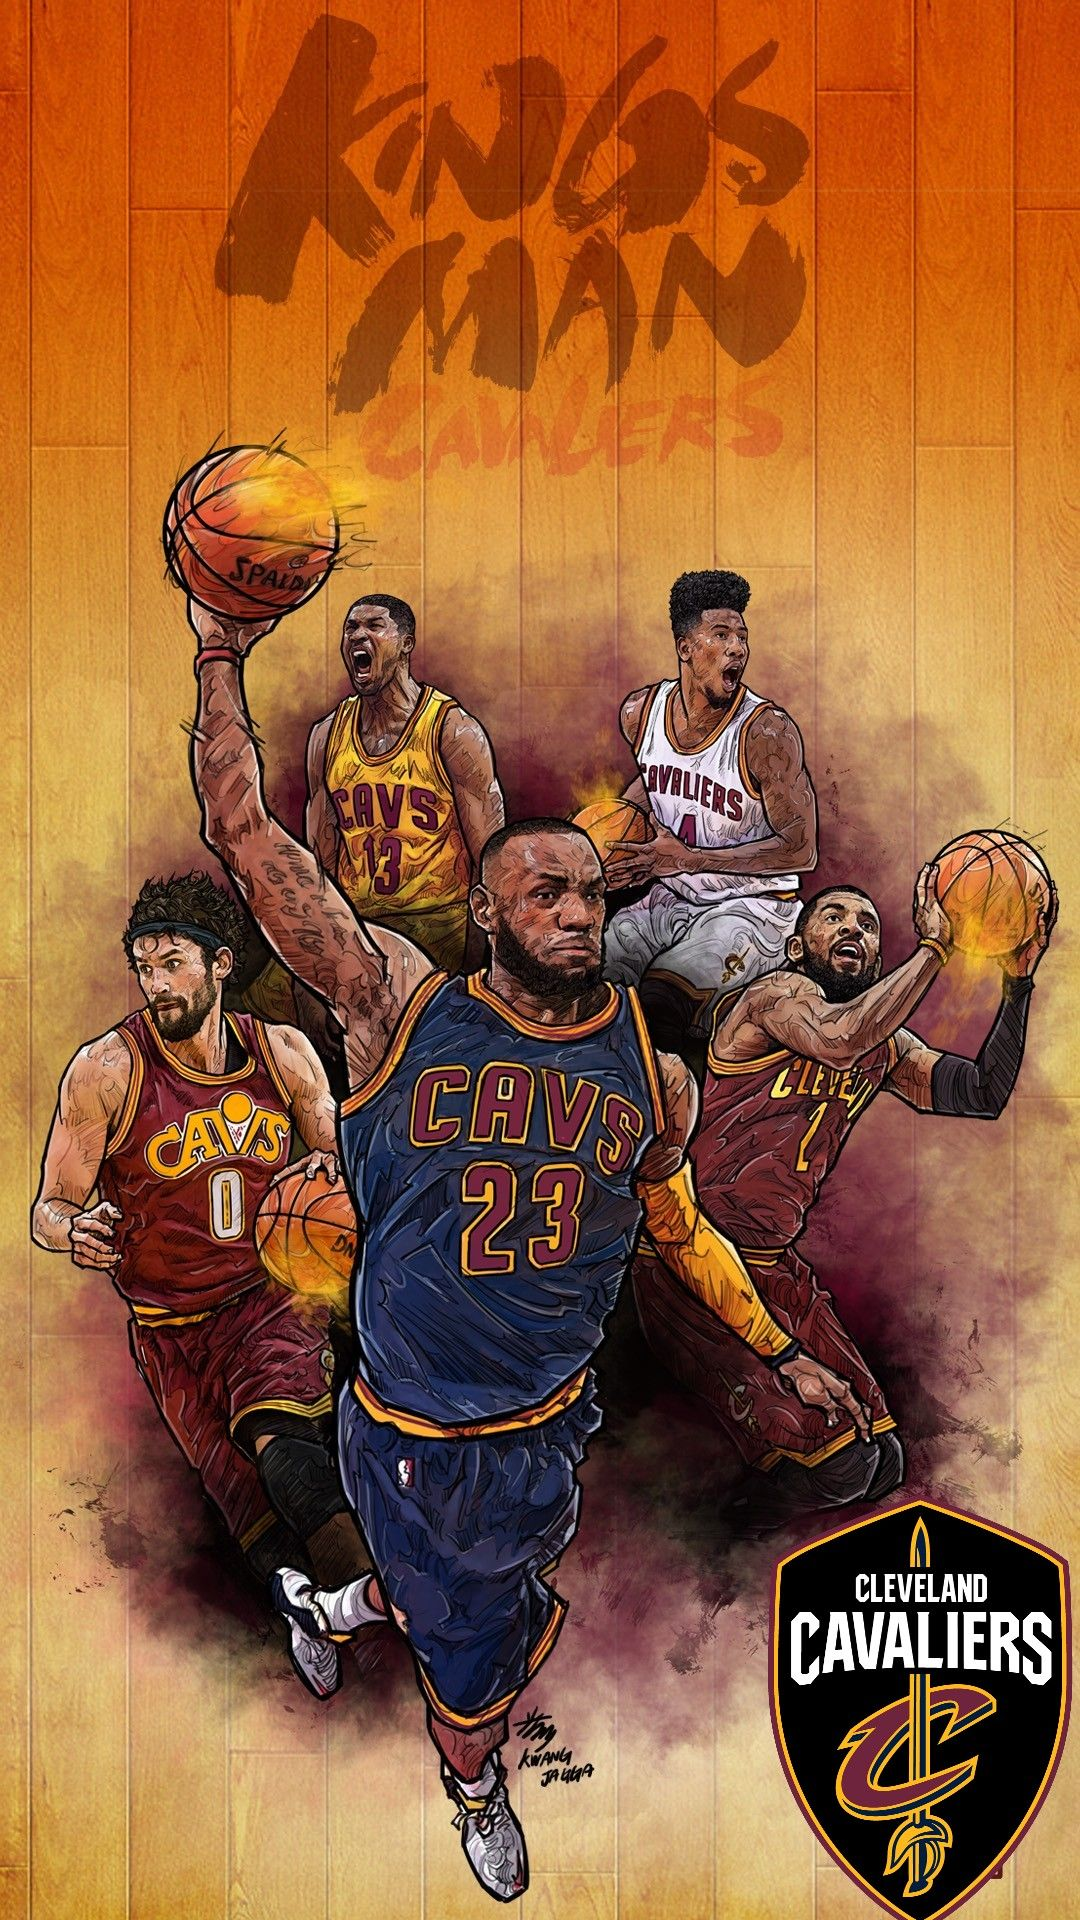 Cleveland Cavaliers 2019 Picture Hupages Download Iphone Wallpapers Cavaliers Wallpaper Love And Basketball Nba Art